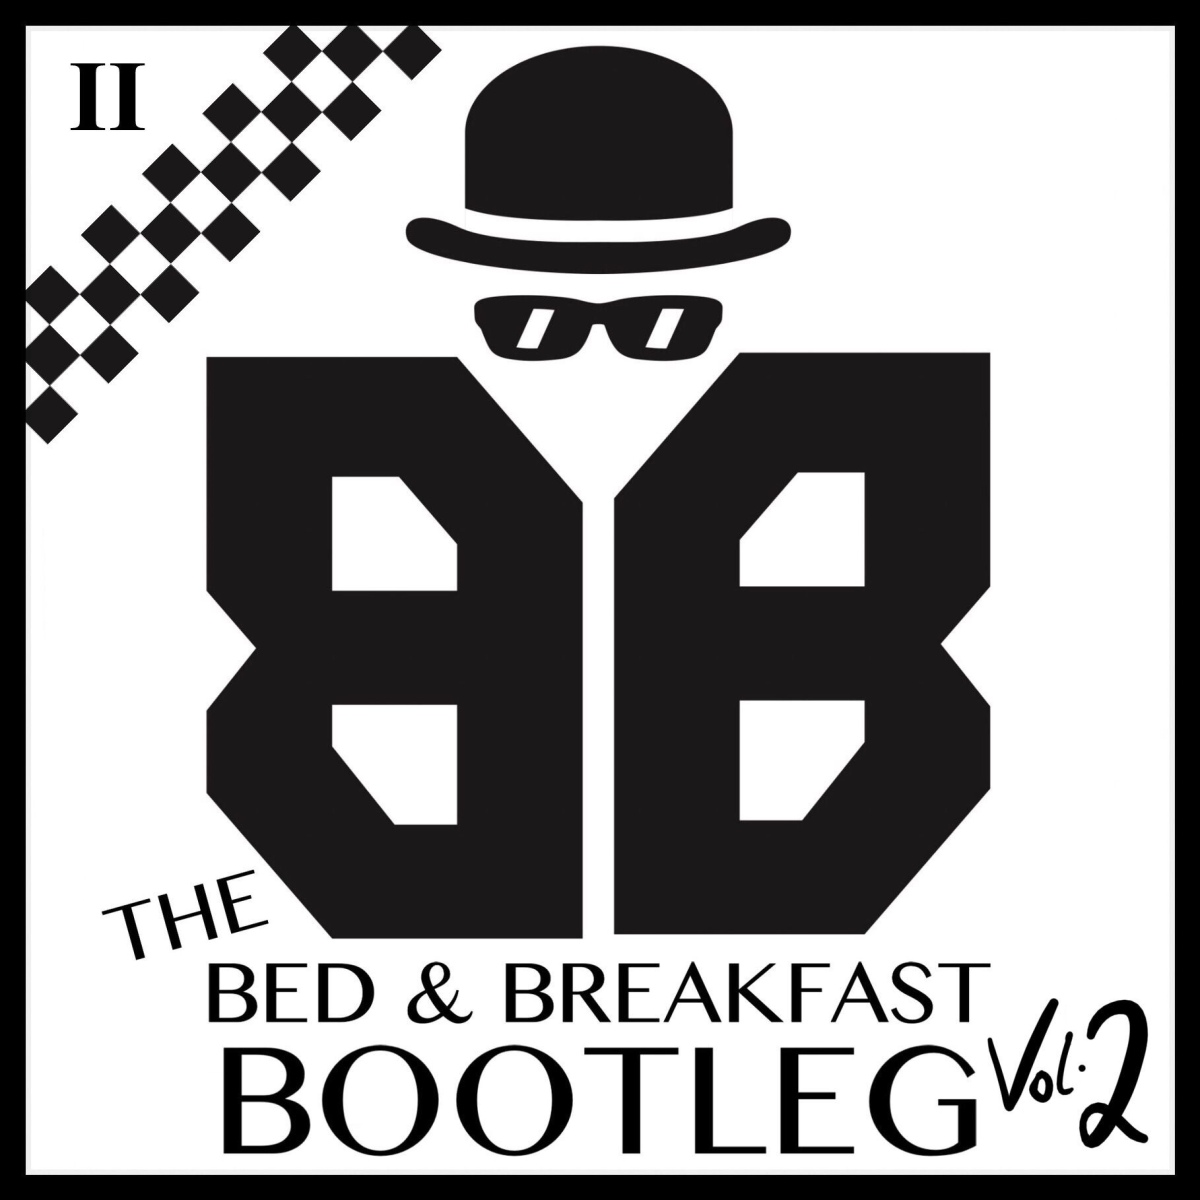 The Bed & Breakfast Bootleg Volume 2